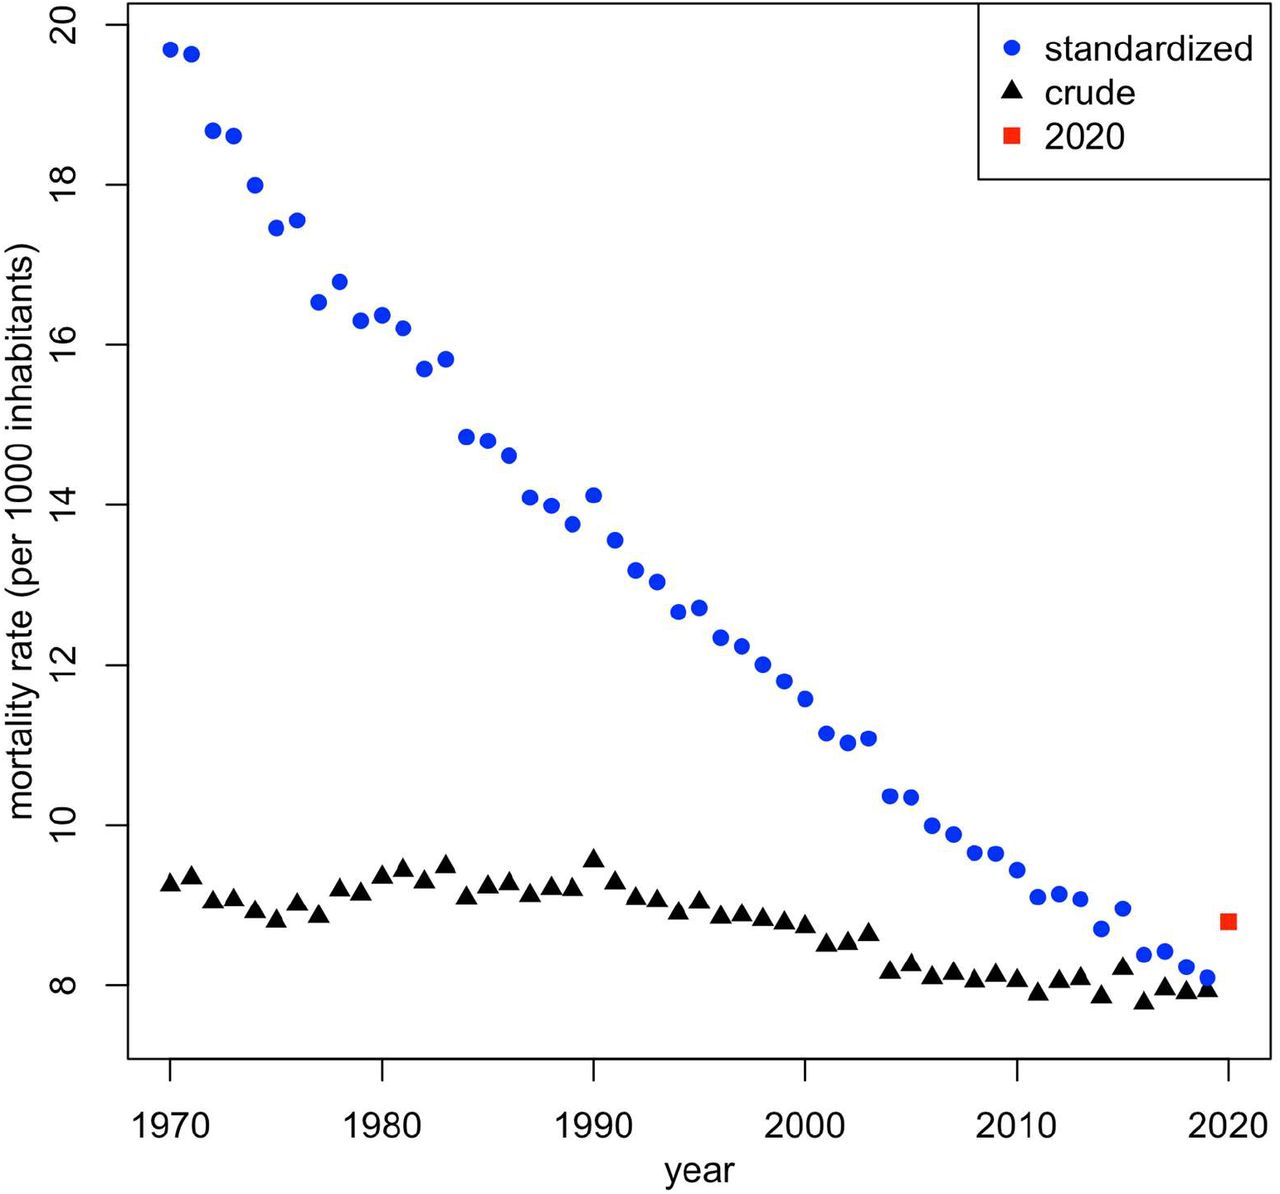 Crude and directly standardized mortality rates in Switzerland for the period 1970-2020 (data from the Swiss Federal Statistical Office and the Human Mortality Database).